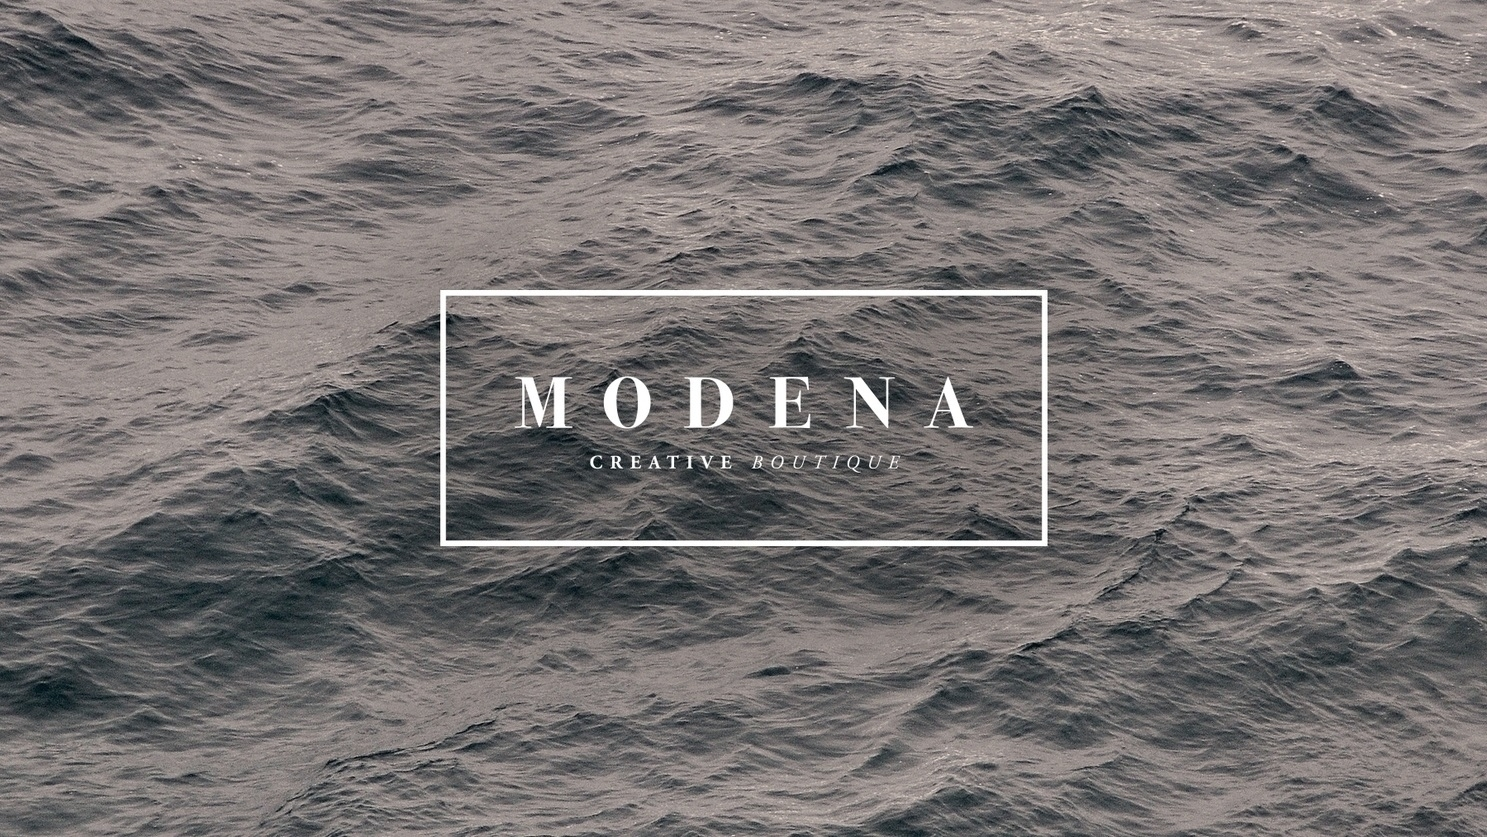 Modena-Creative Boutique (@modena_creative_boutique) Cover Image